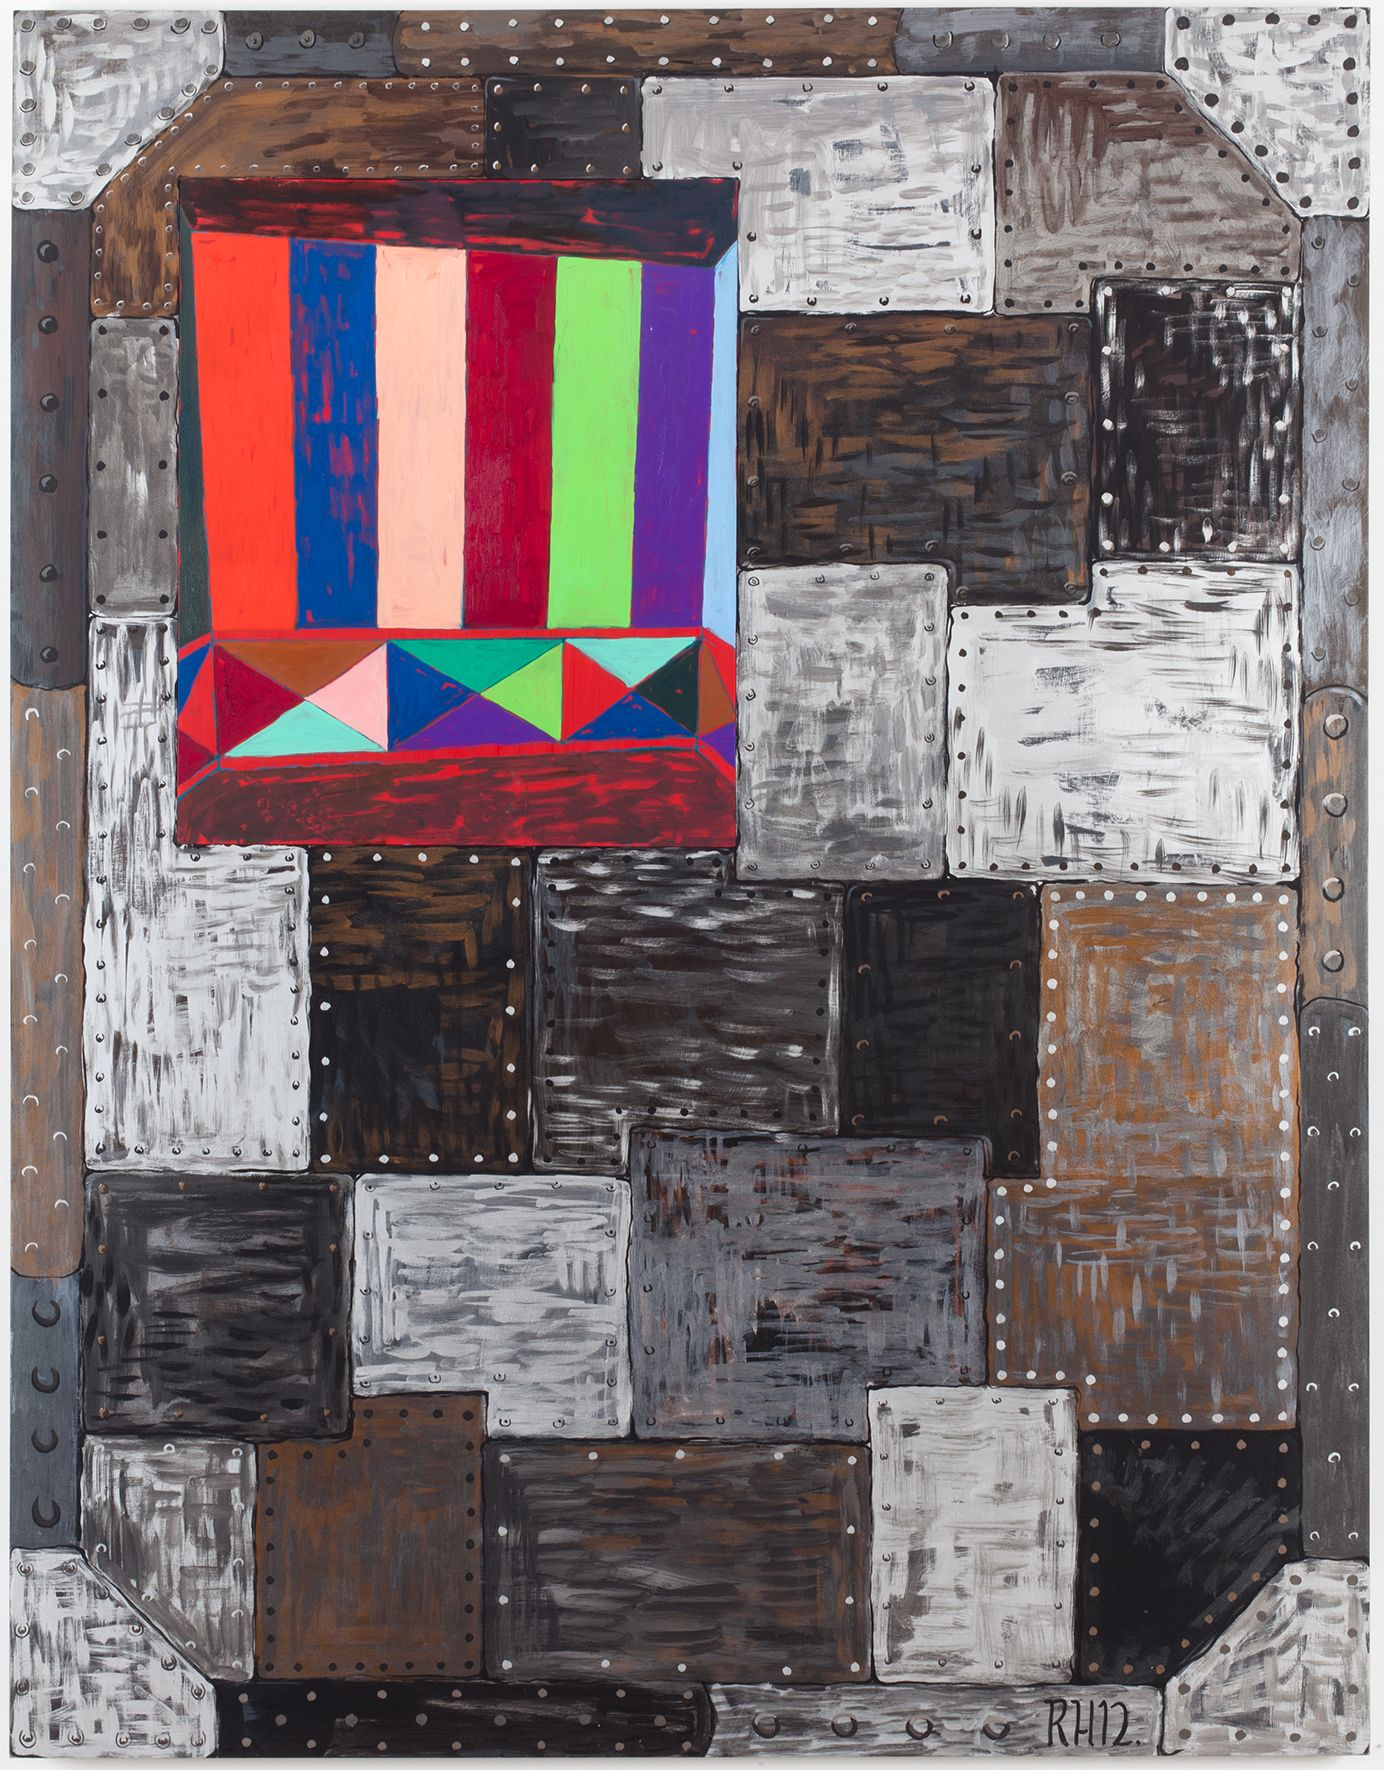 Vault #1, 2012, Oil on canvas and acrylic on panel, 63 x 49 x 1 5/8 inches (160 x 124.5 x 4.1 cm)